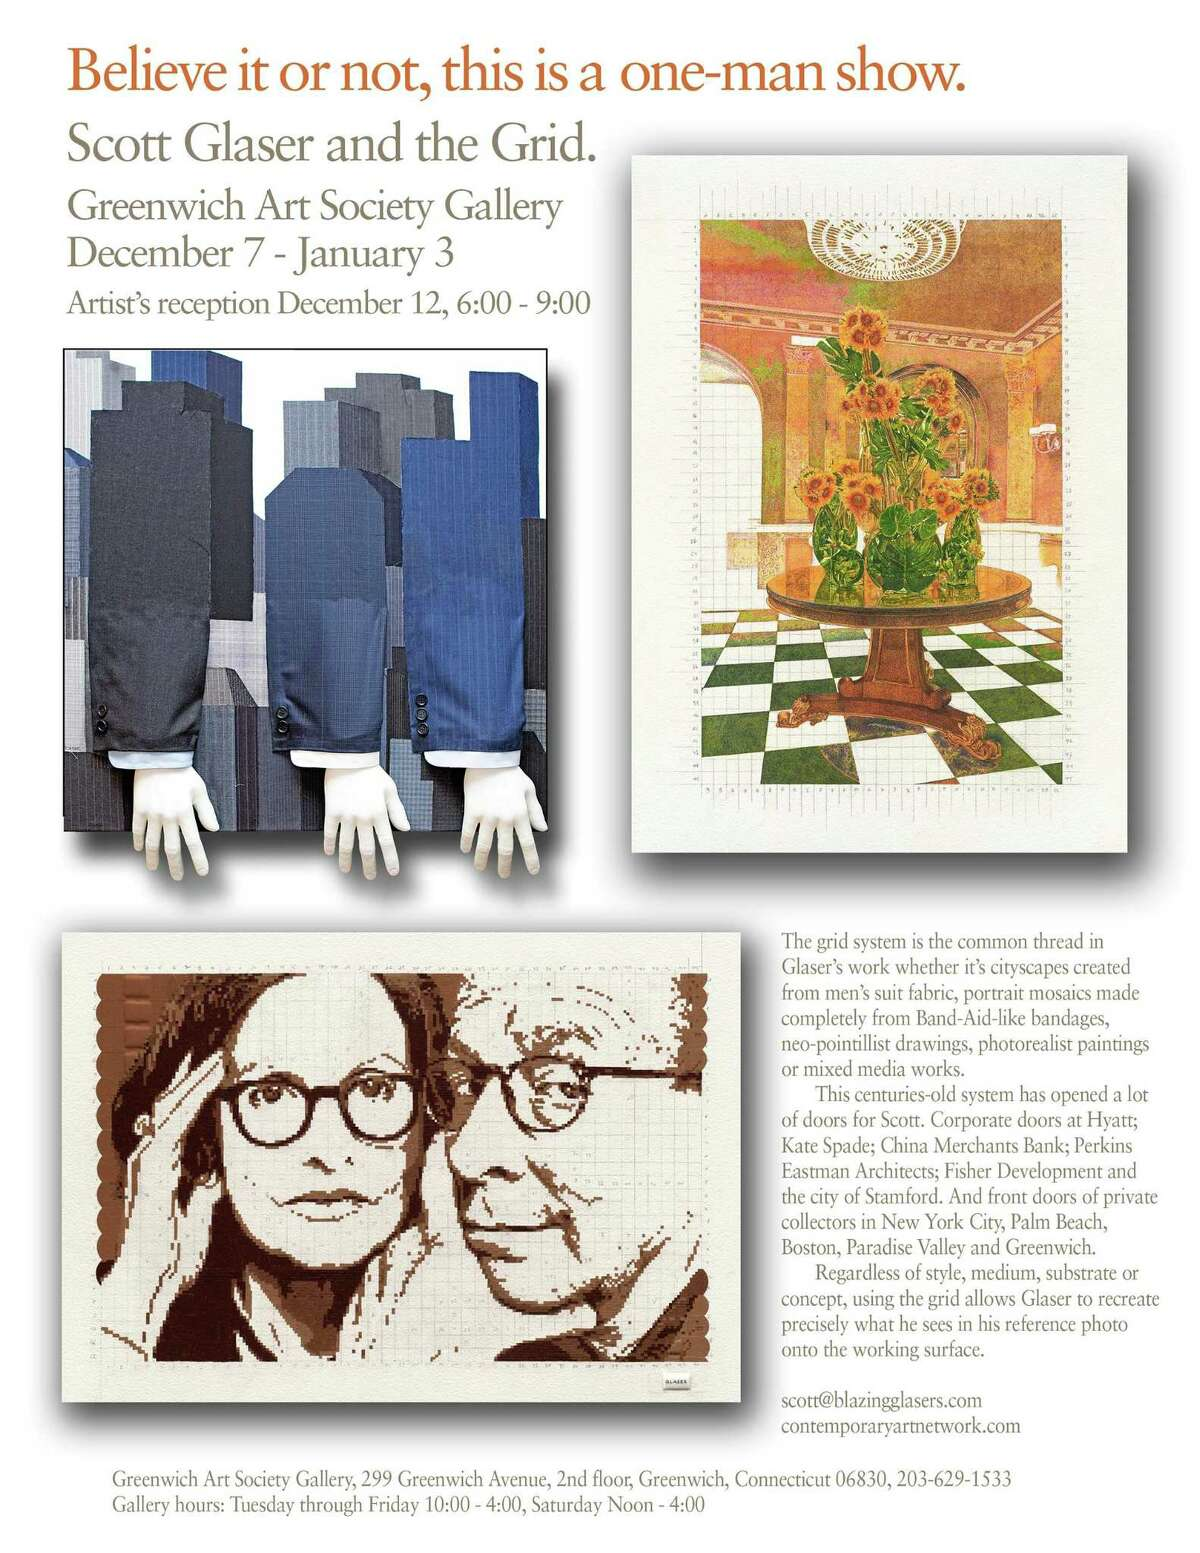 The Greenwich Art Society is hosting